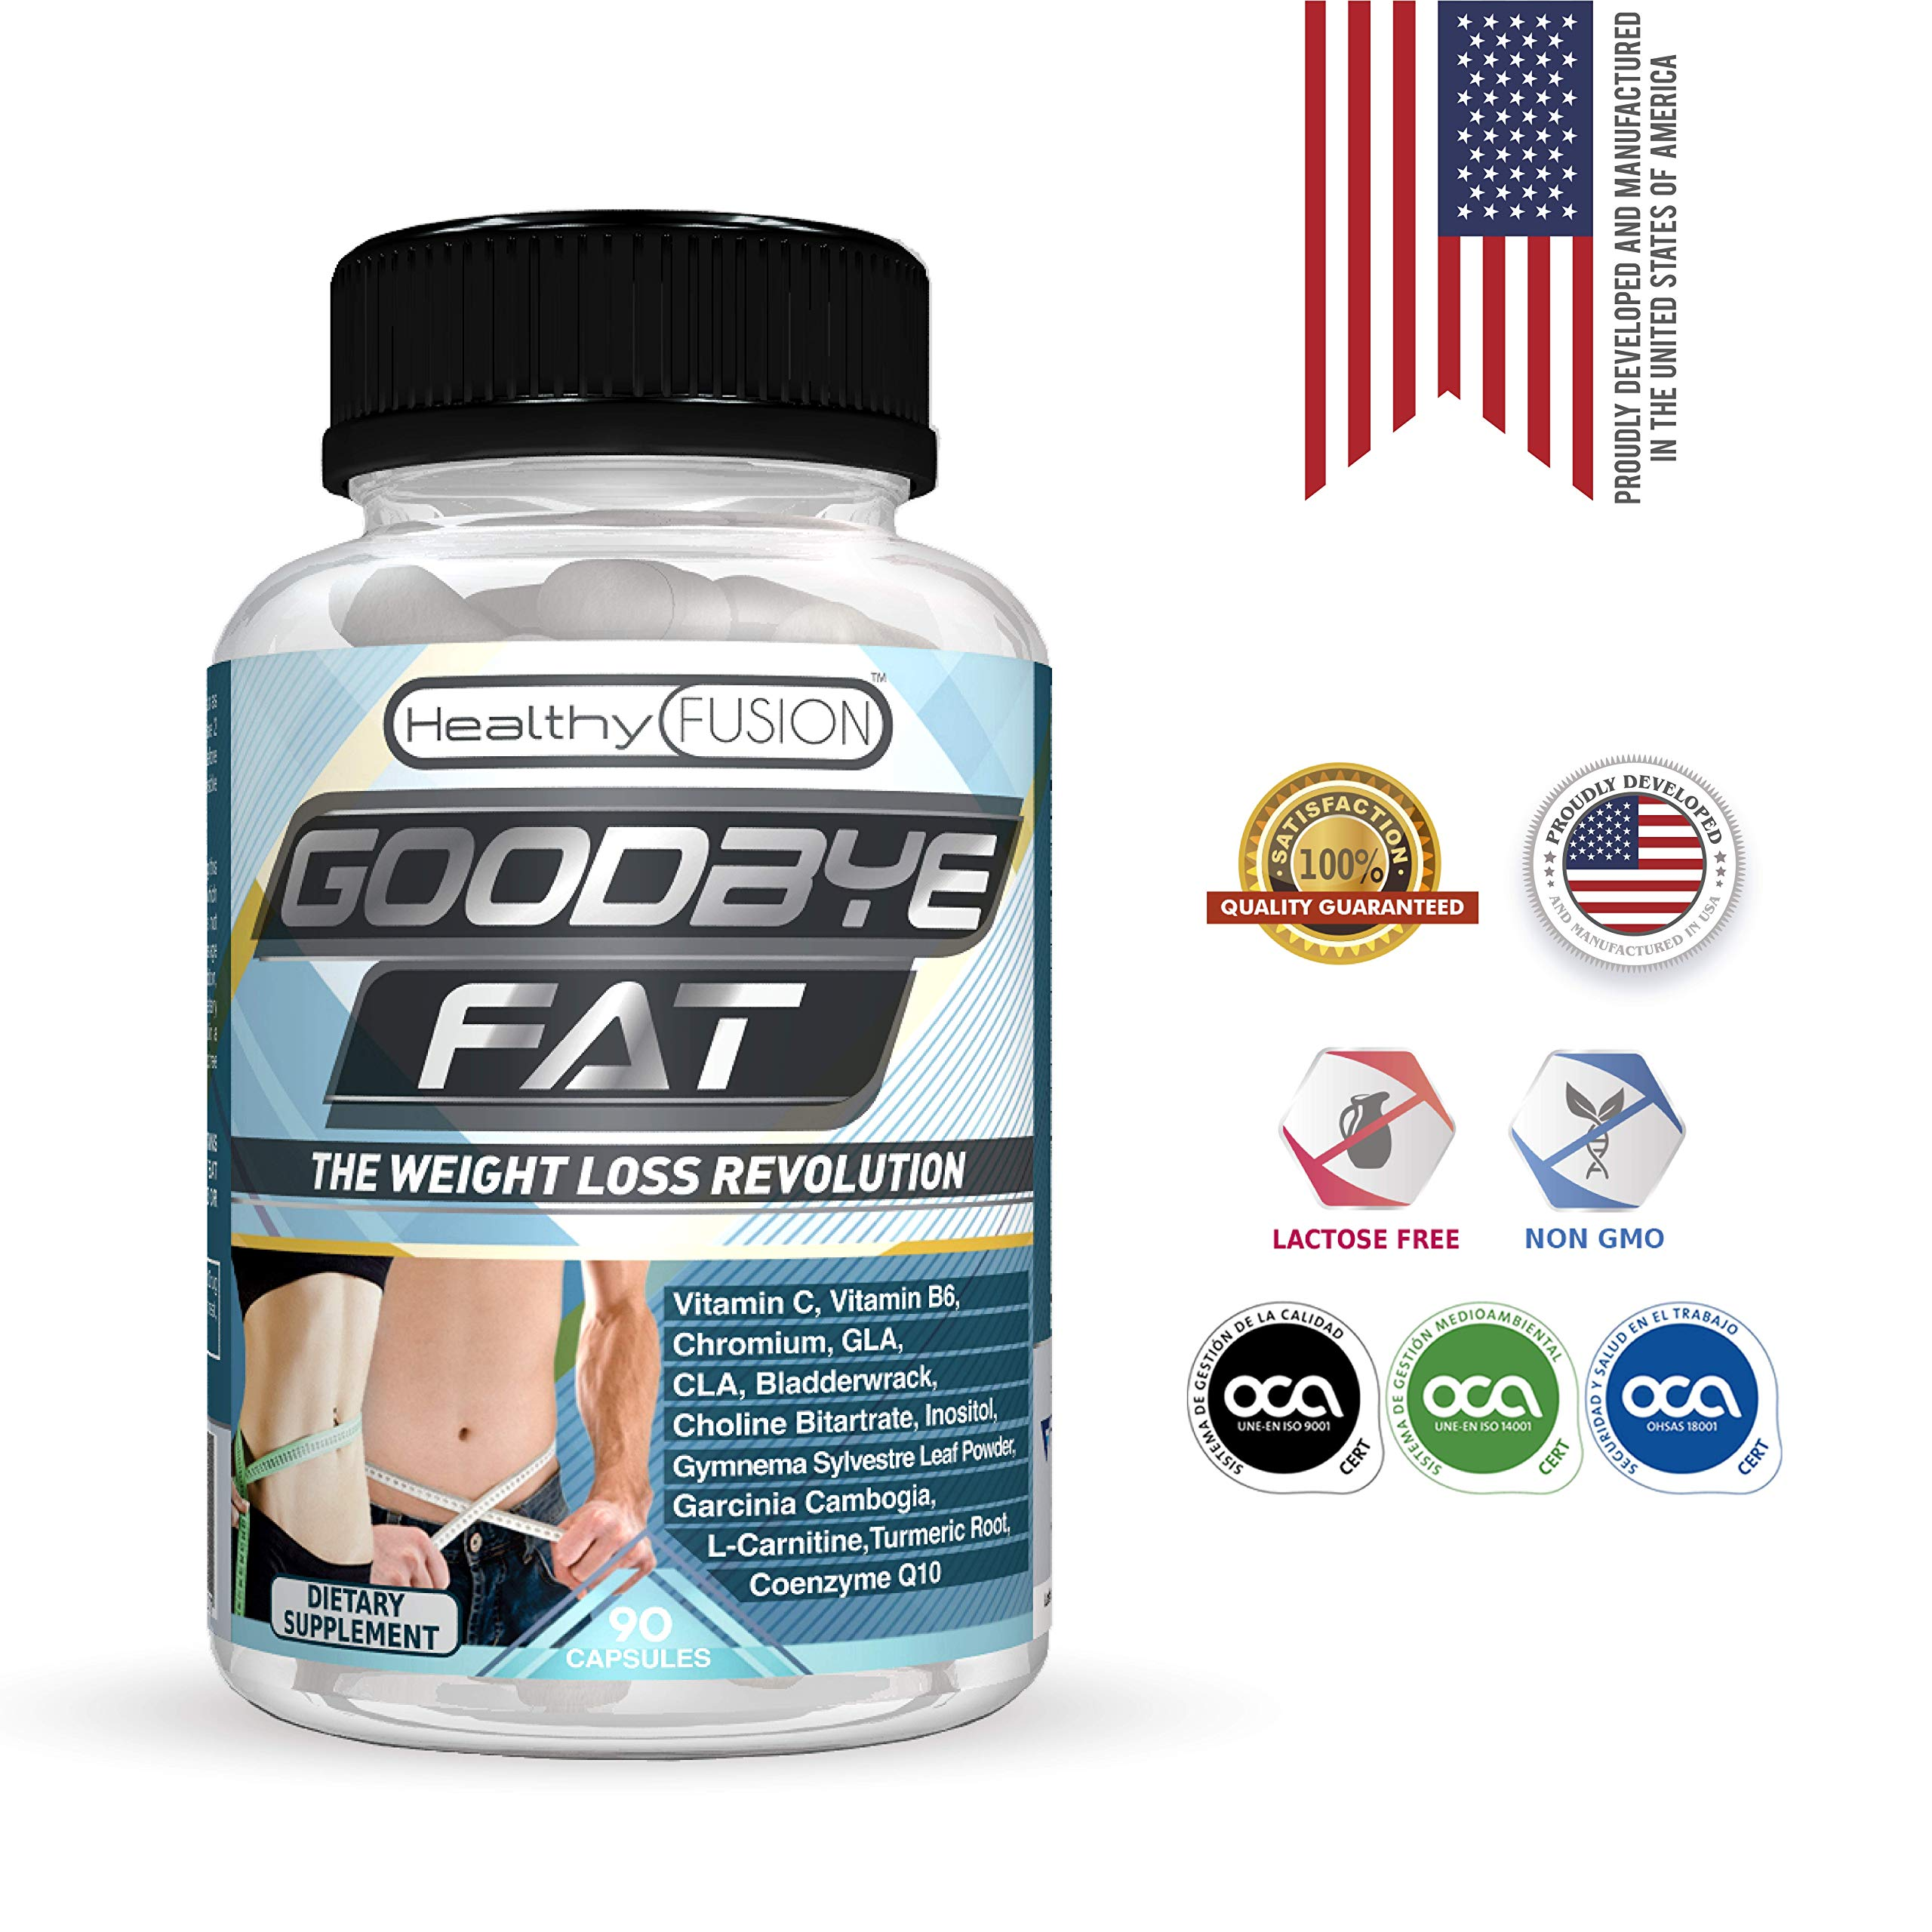 Goodbye Fat - Powerful Slimming Supplement & Fat Burner - Appetite Suppresant - Effective Thermogenics - Fast & Safe Slimming While Stimulating Metabolism - Exclusive Formulation - 90 Capsules by Healthy Fusion